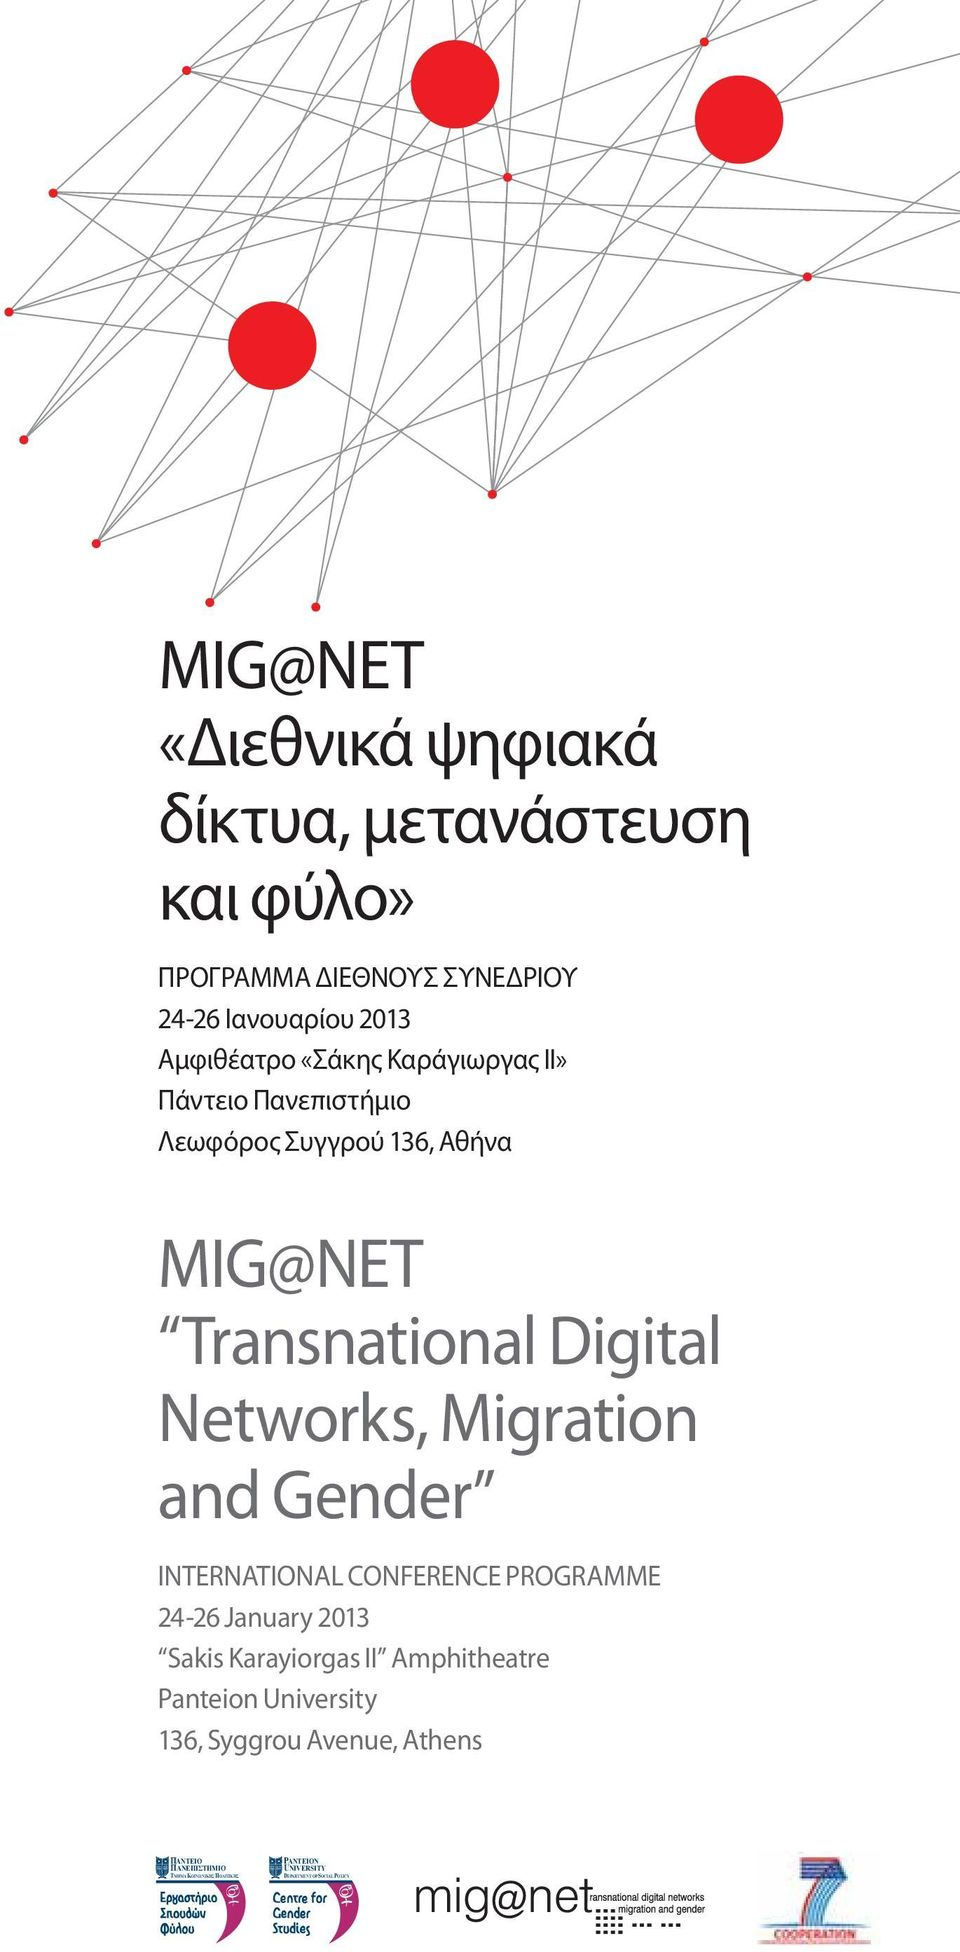 136, Αθήνα Transnational Digital Networks, Migration and Gender INTERNATIONAL CONFERENCE PROGRAMME 24-26 January